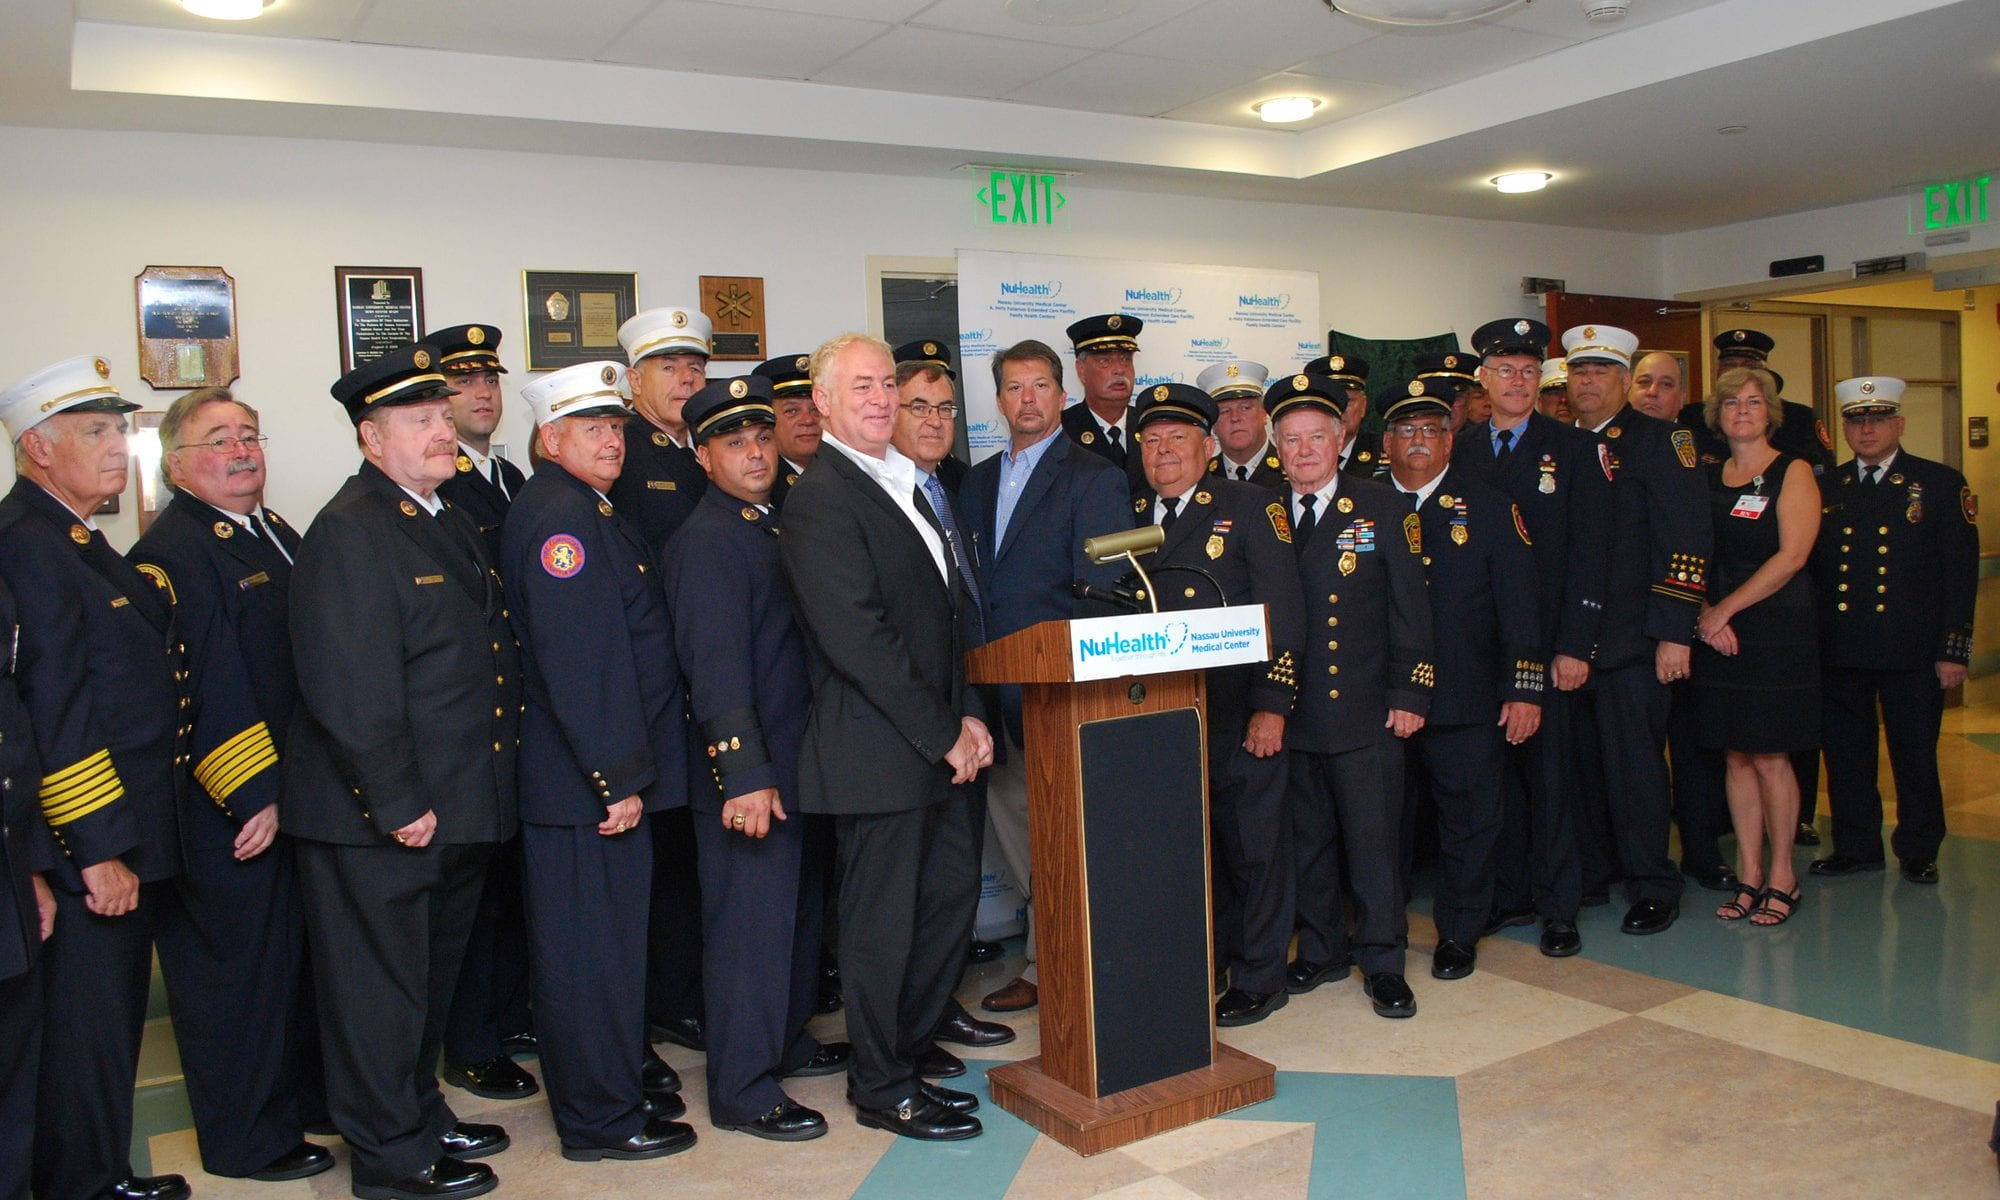 Nassau County Fire Fighters Burn Center Foundation group photo